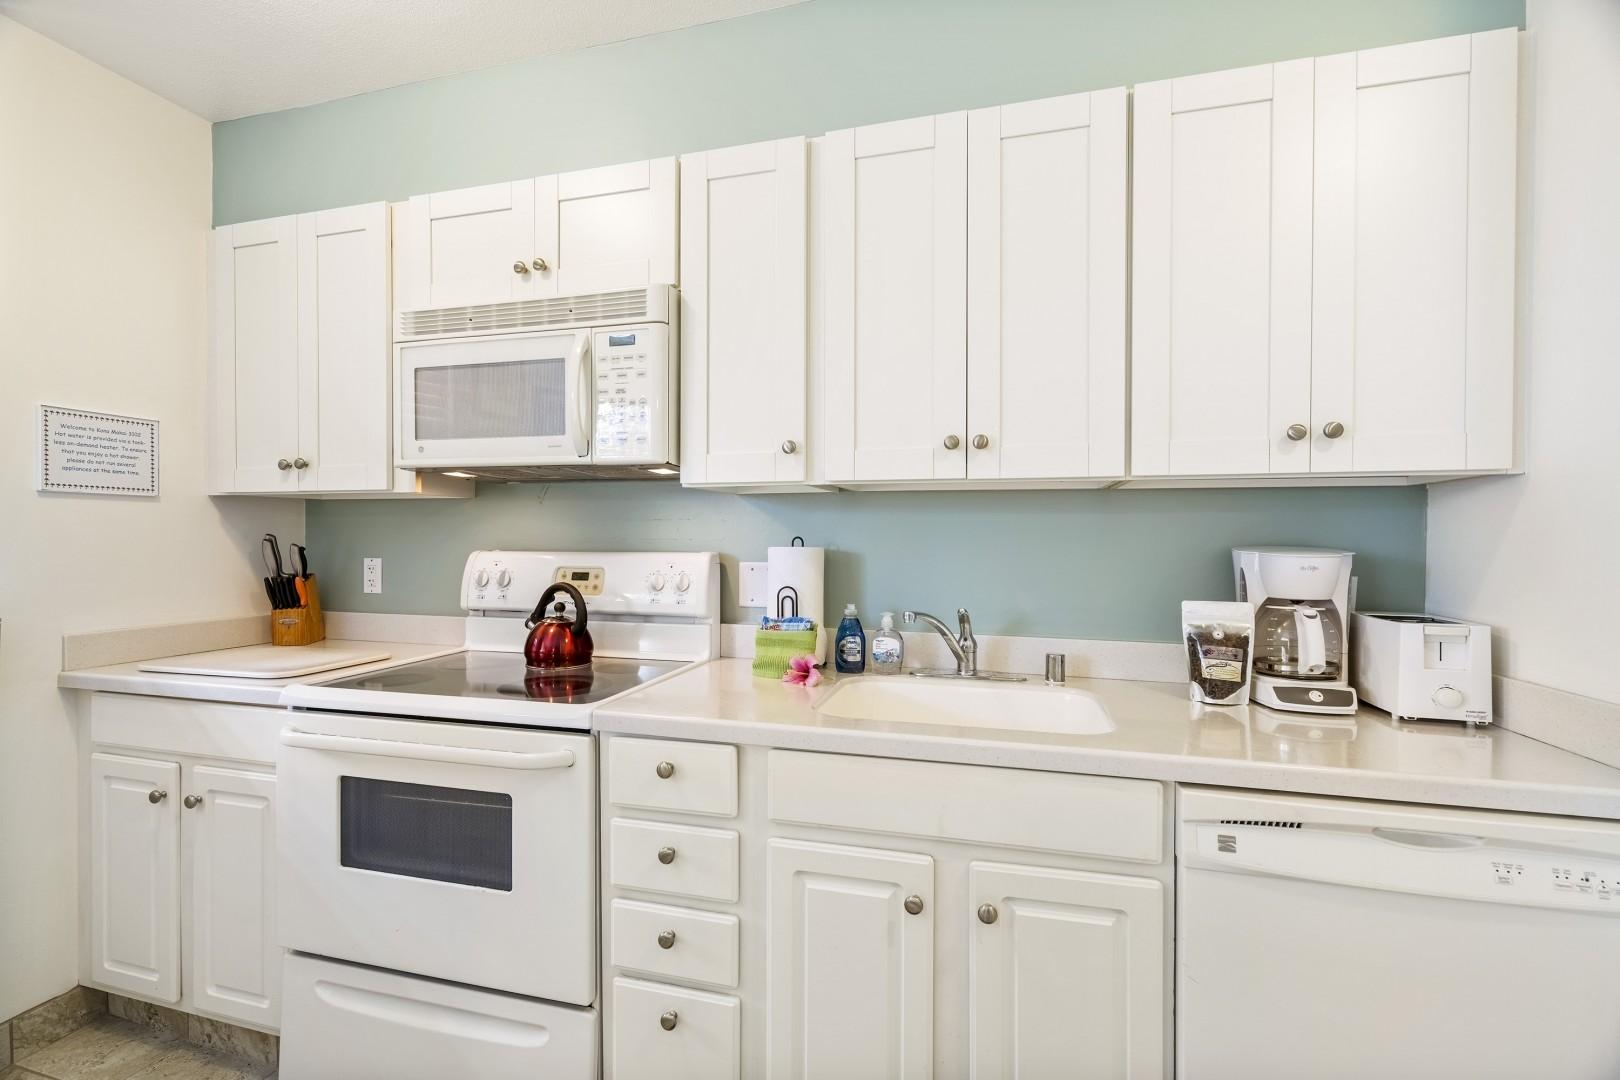 Fully equipped kitchen for all your meal preparation needs!